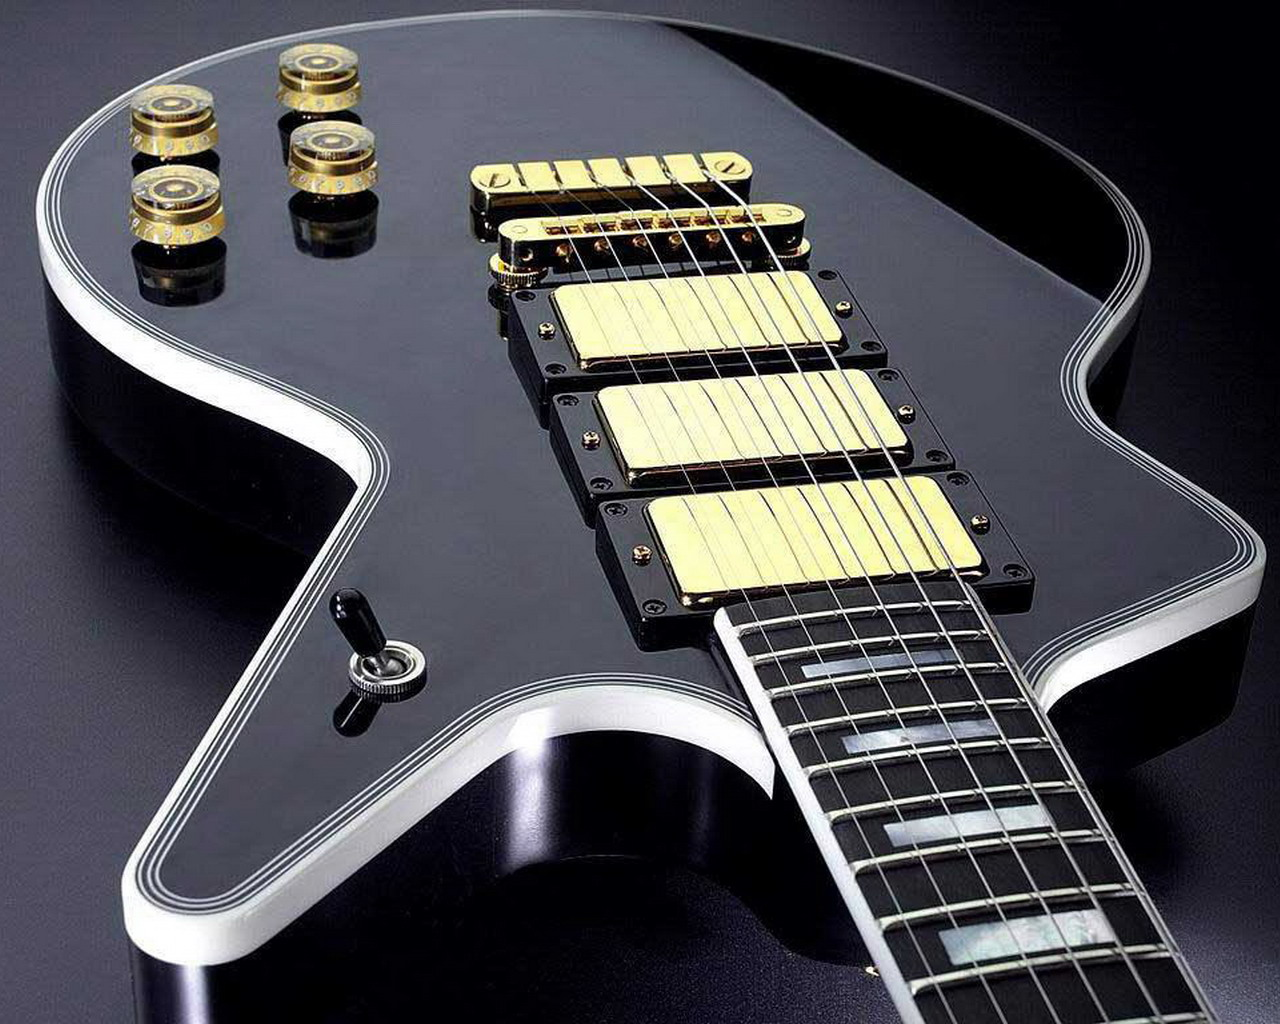 Guitar Rock wallpapers 1280x1024